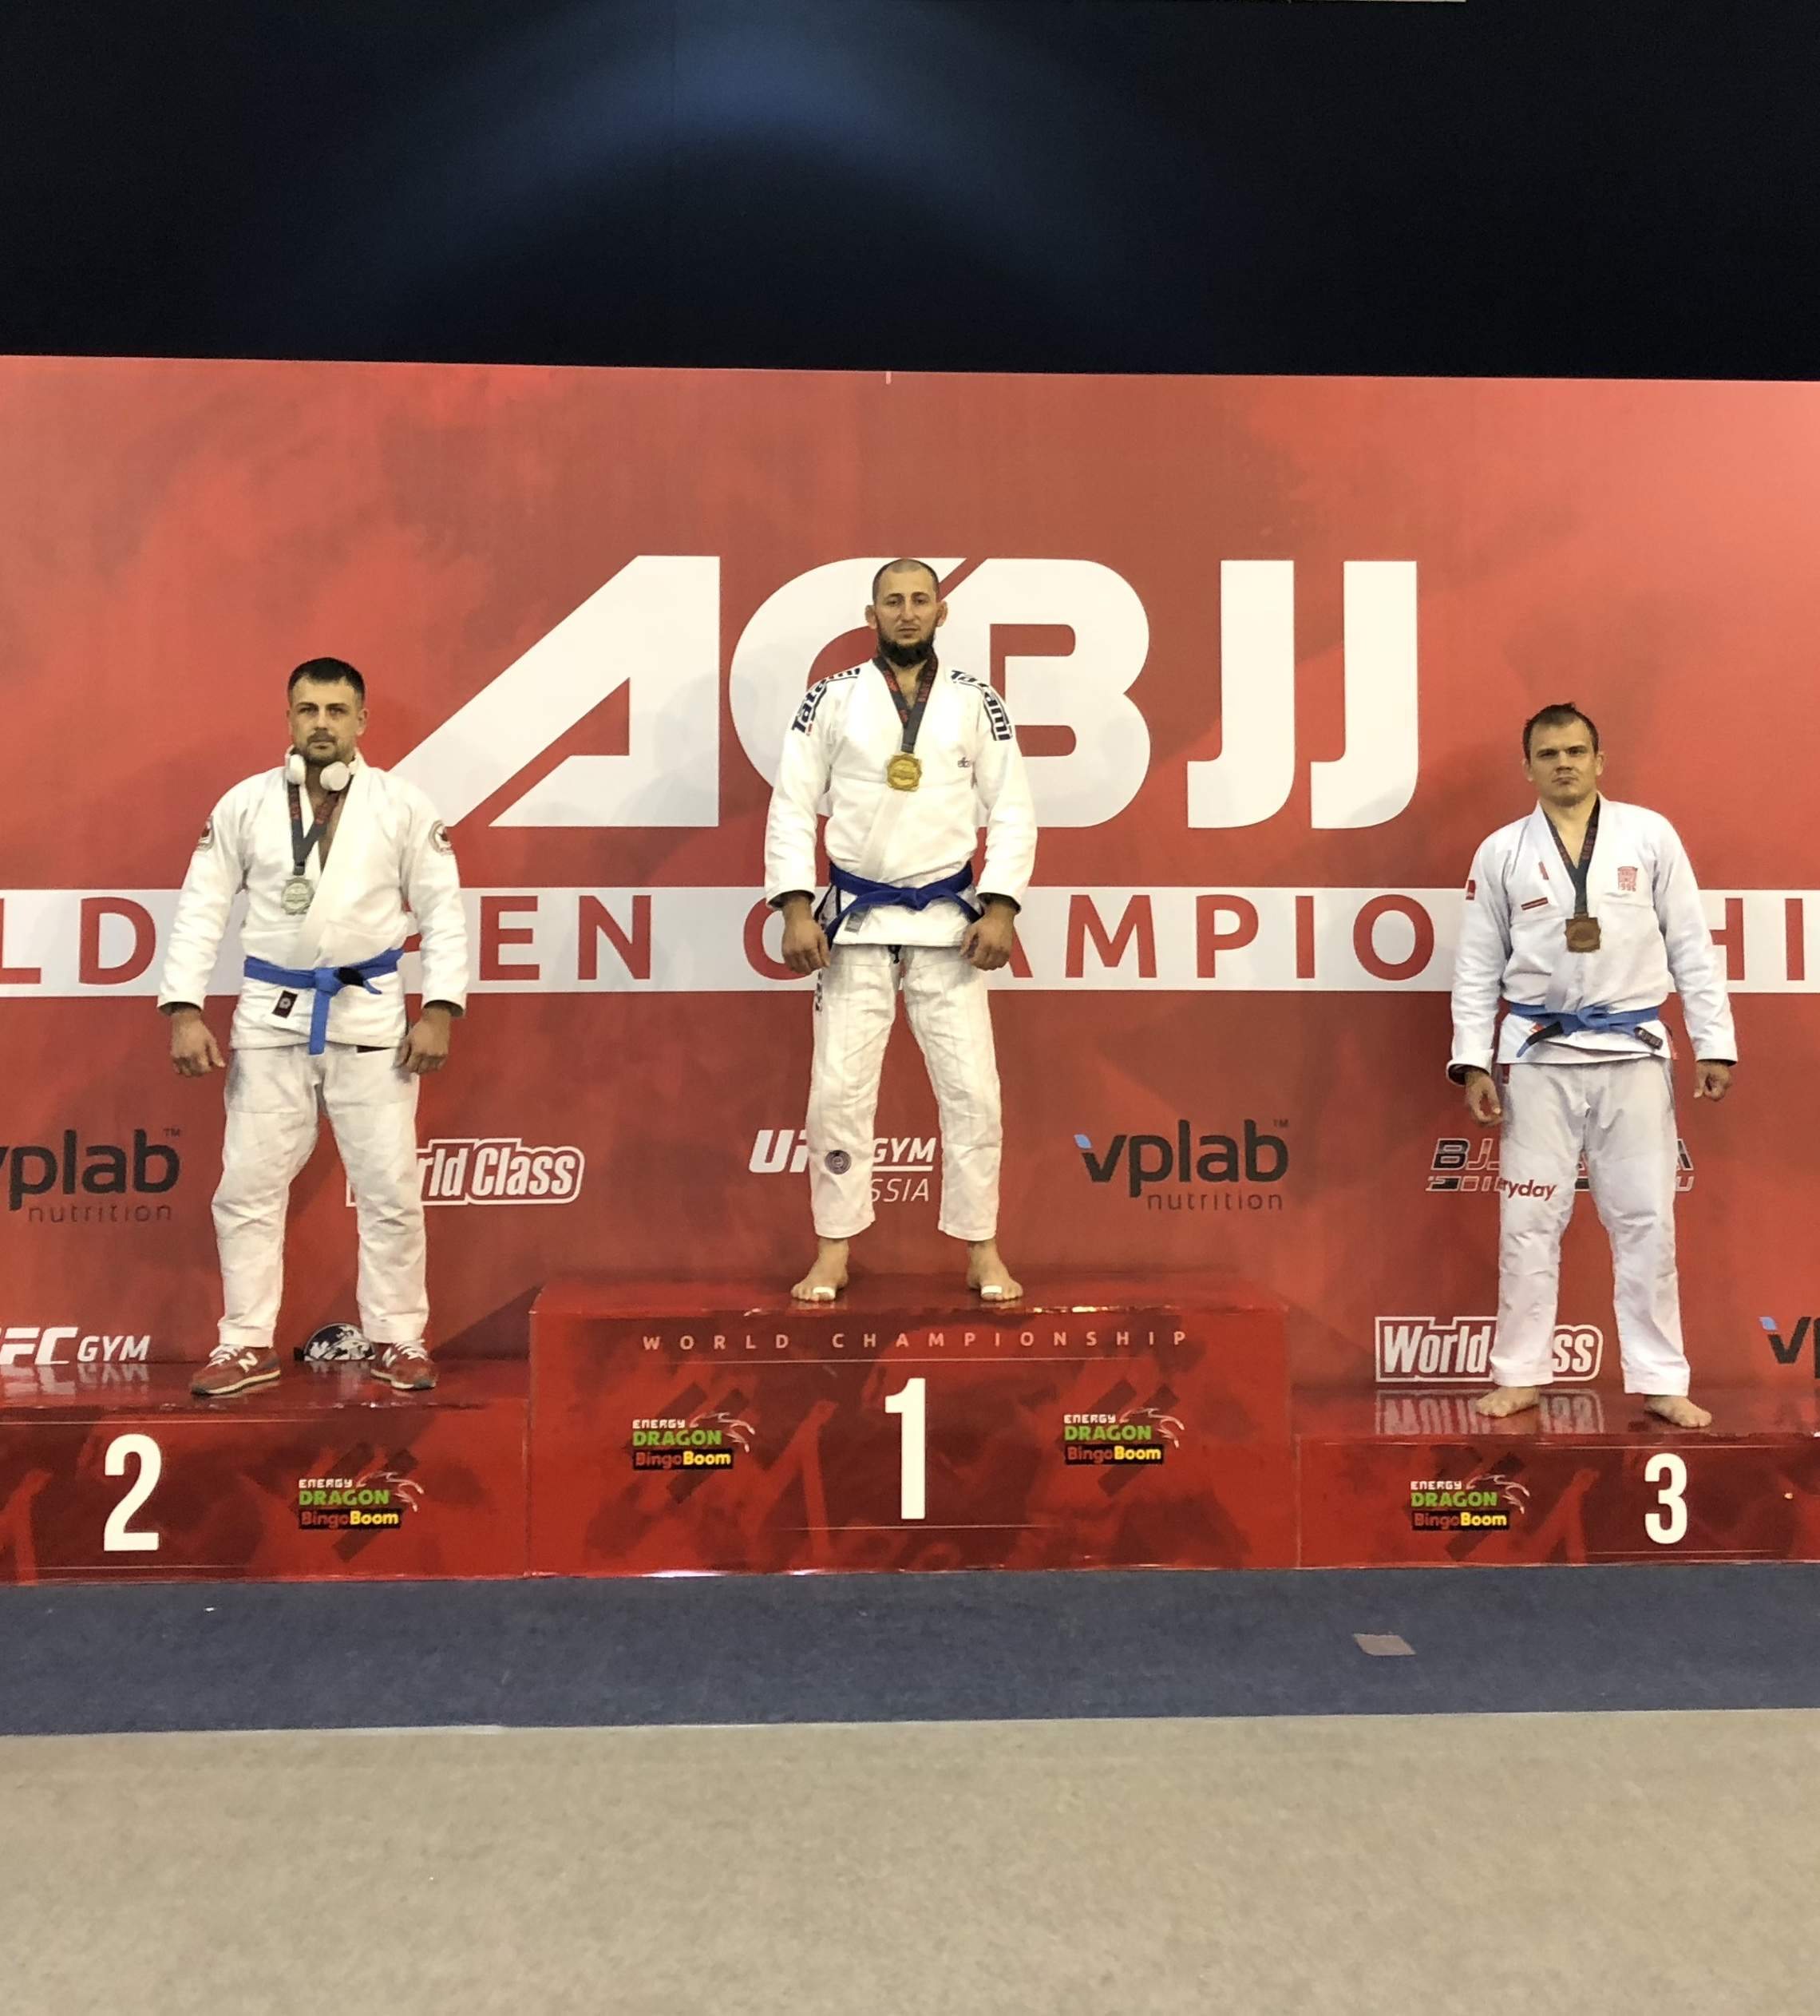 ACB JJ World Championship 2019 Moscow